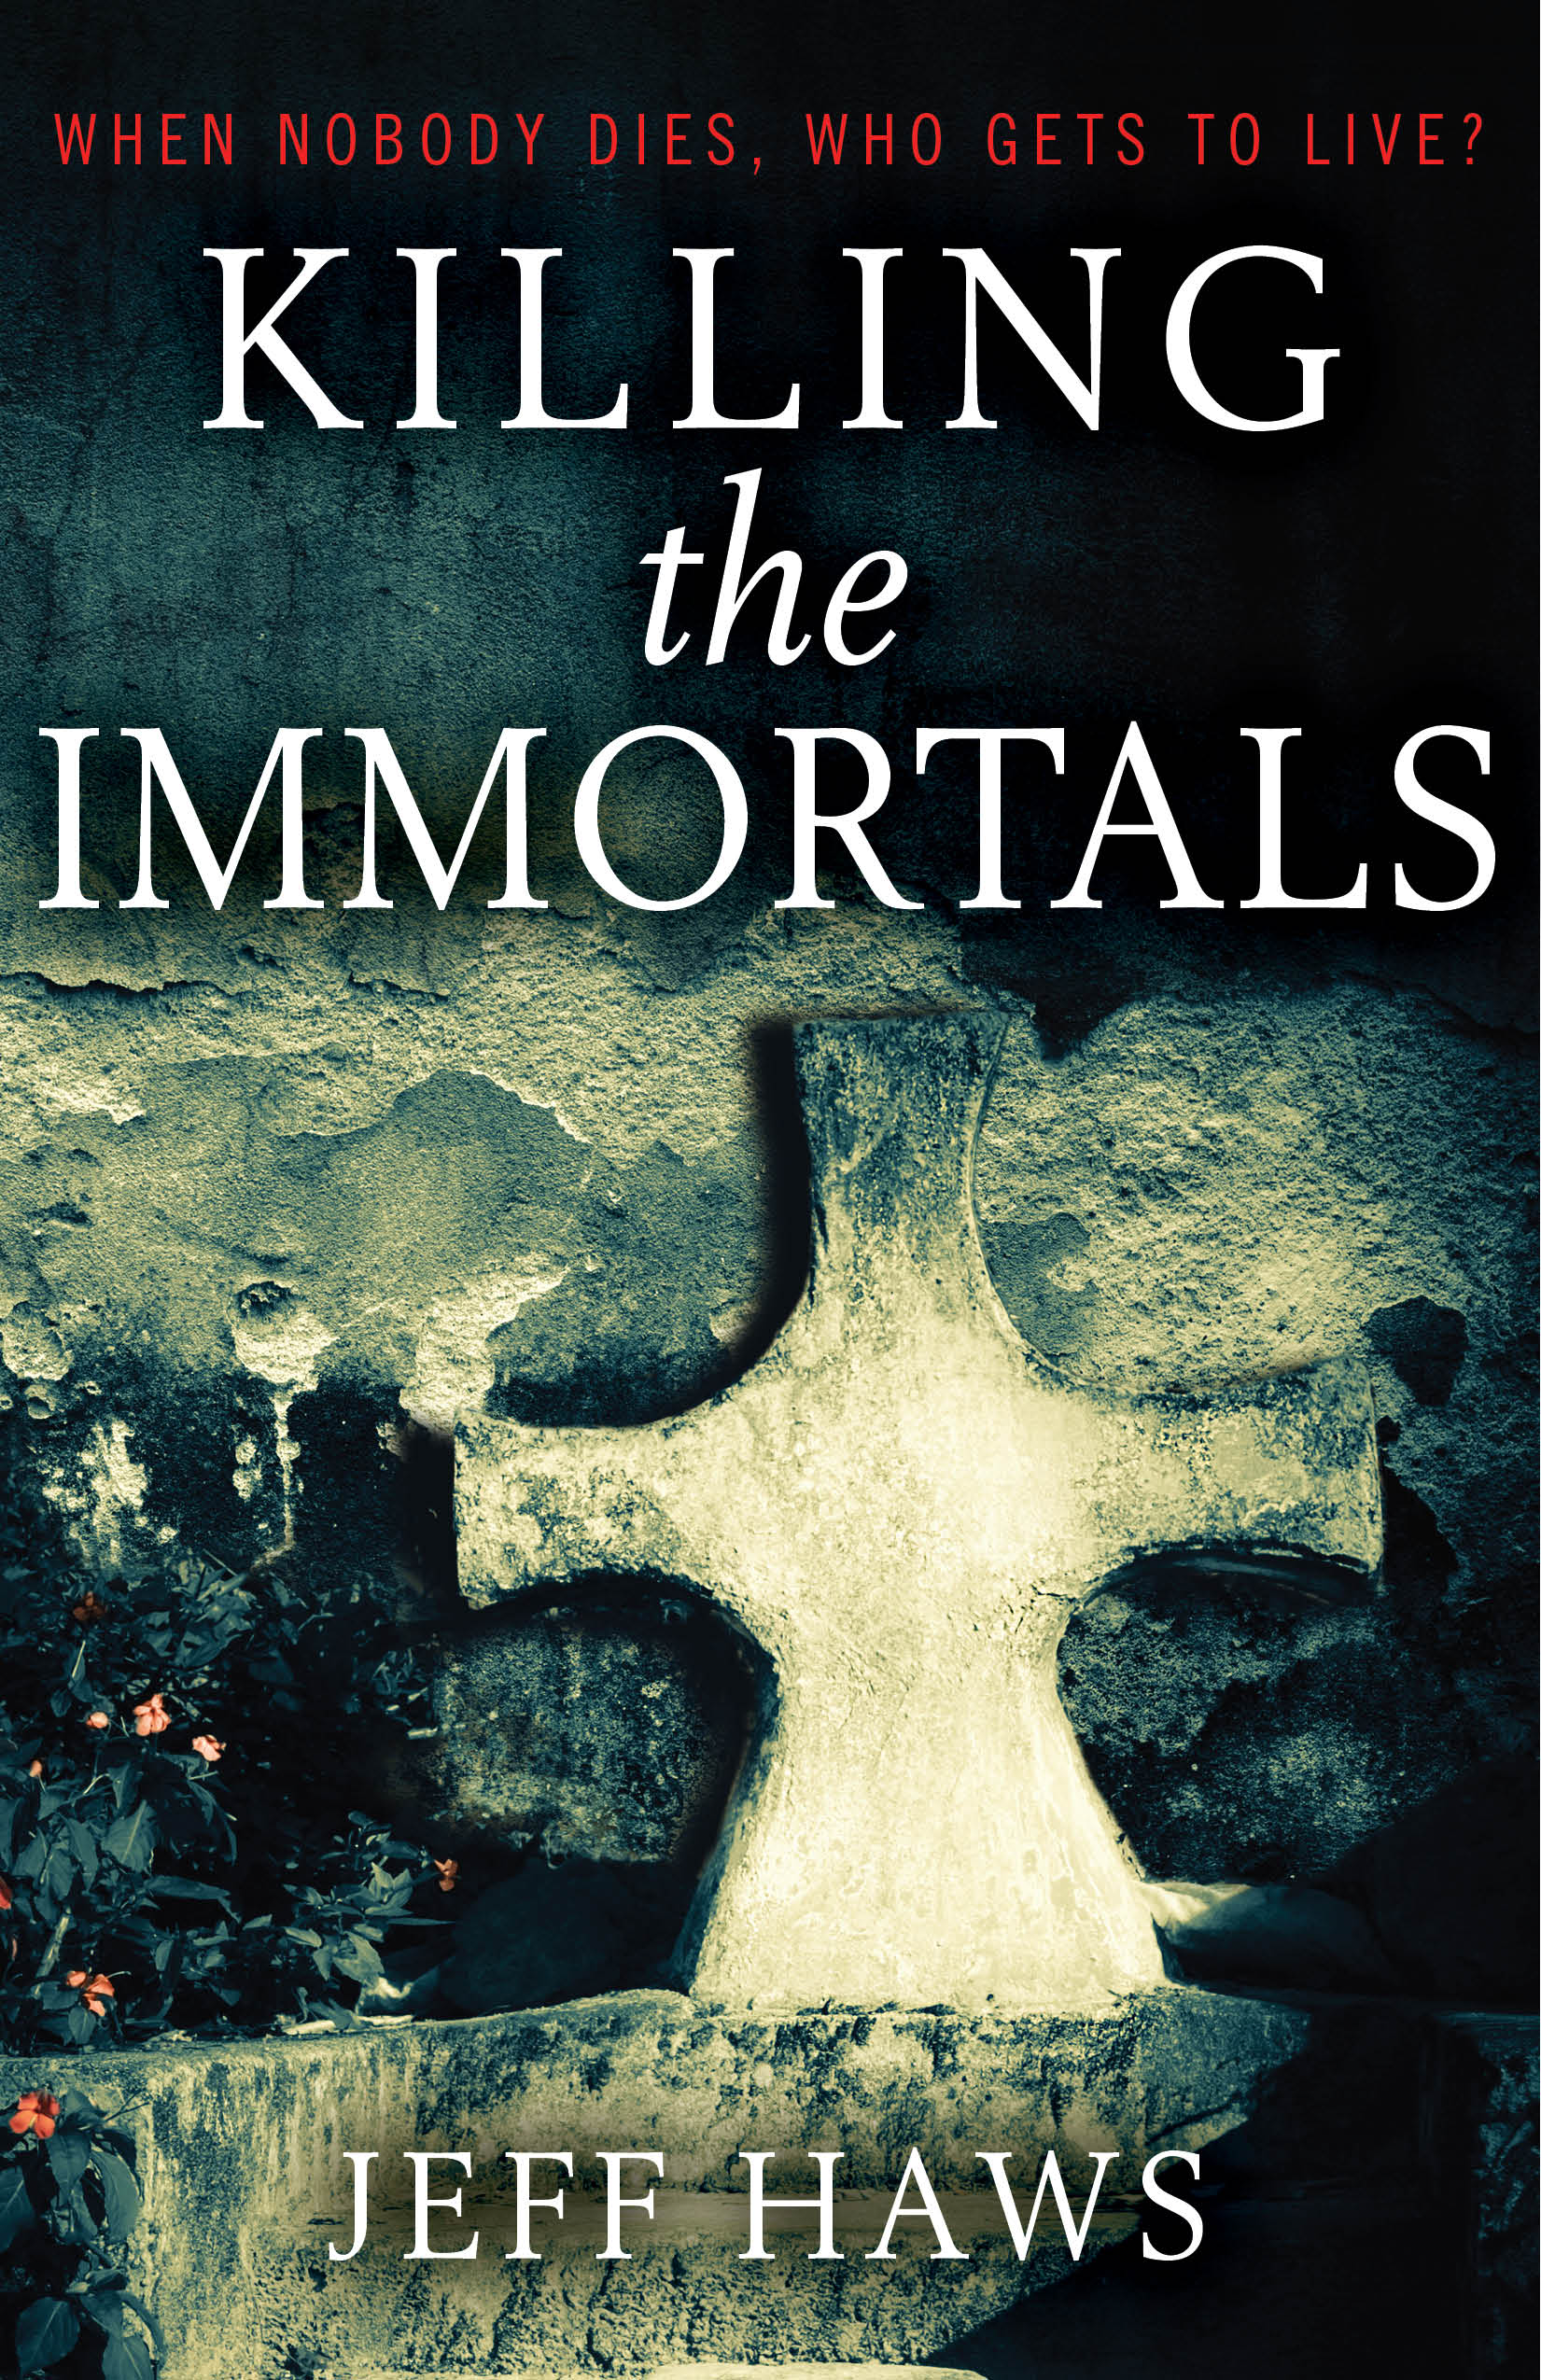 Killing the Immortals by Jeff Haws | Interview with Author Jeff Haws on the ellensmithwrites.com blog